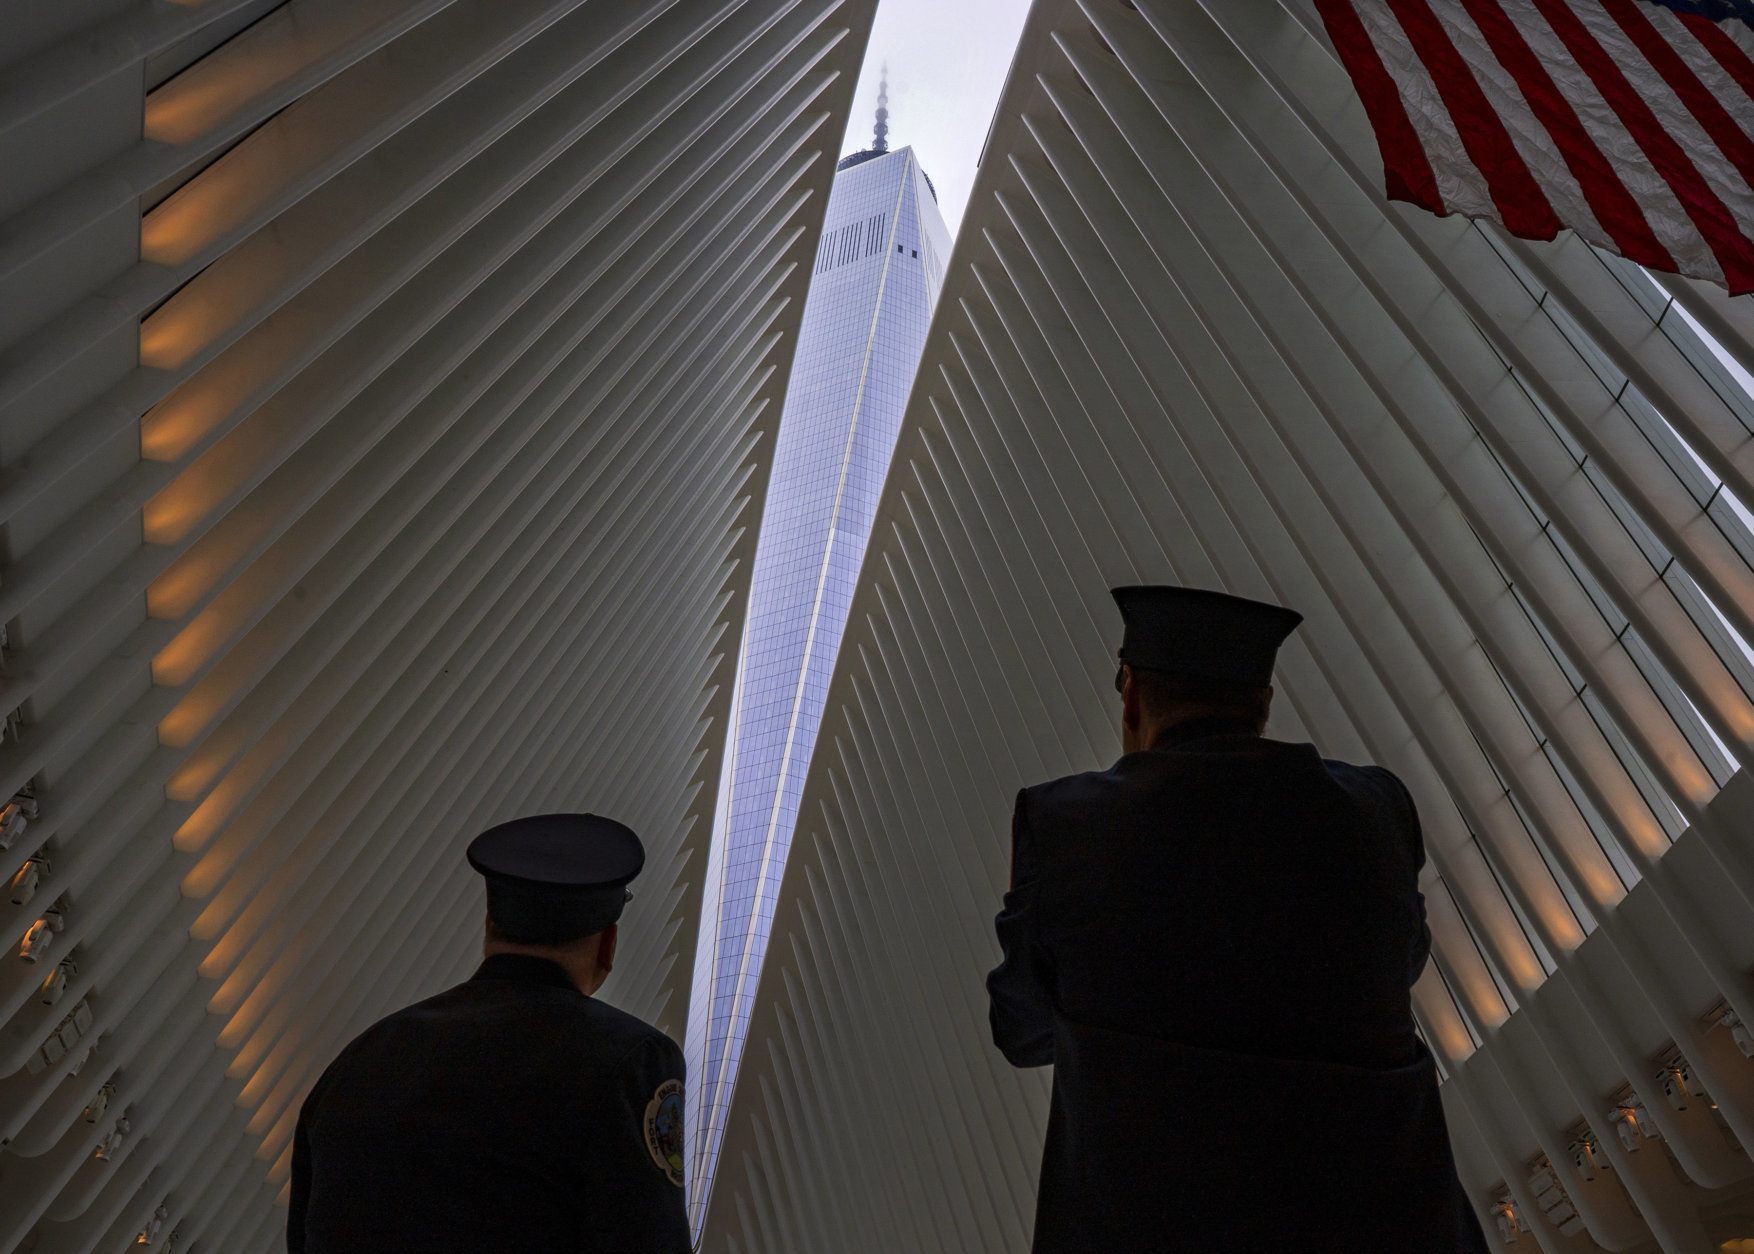 Two members of the New York City fire department look towards One World Trade Center through the open ceiling of the Oculus, part of the World Trade Center transportation hub in New York, Tuesday, Sept. 11, 2018, the anniversary of 9/11 terrorist attacks. The transit hall ceiling window was opened just before 10:28 a.m., marking the moment that the North Tower of the World Trade Center collapsed on September 11, 2001. (AP Photo/Craig Ruttle)